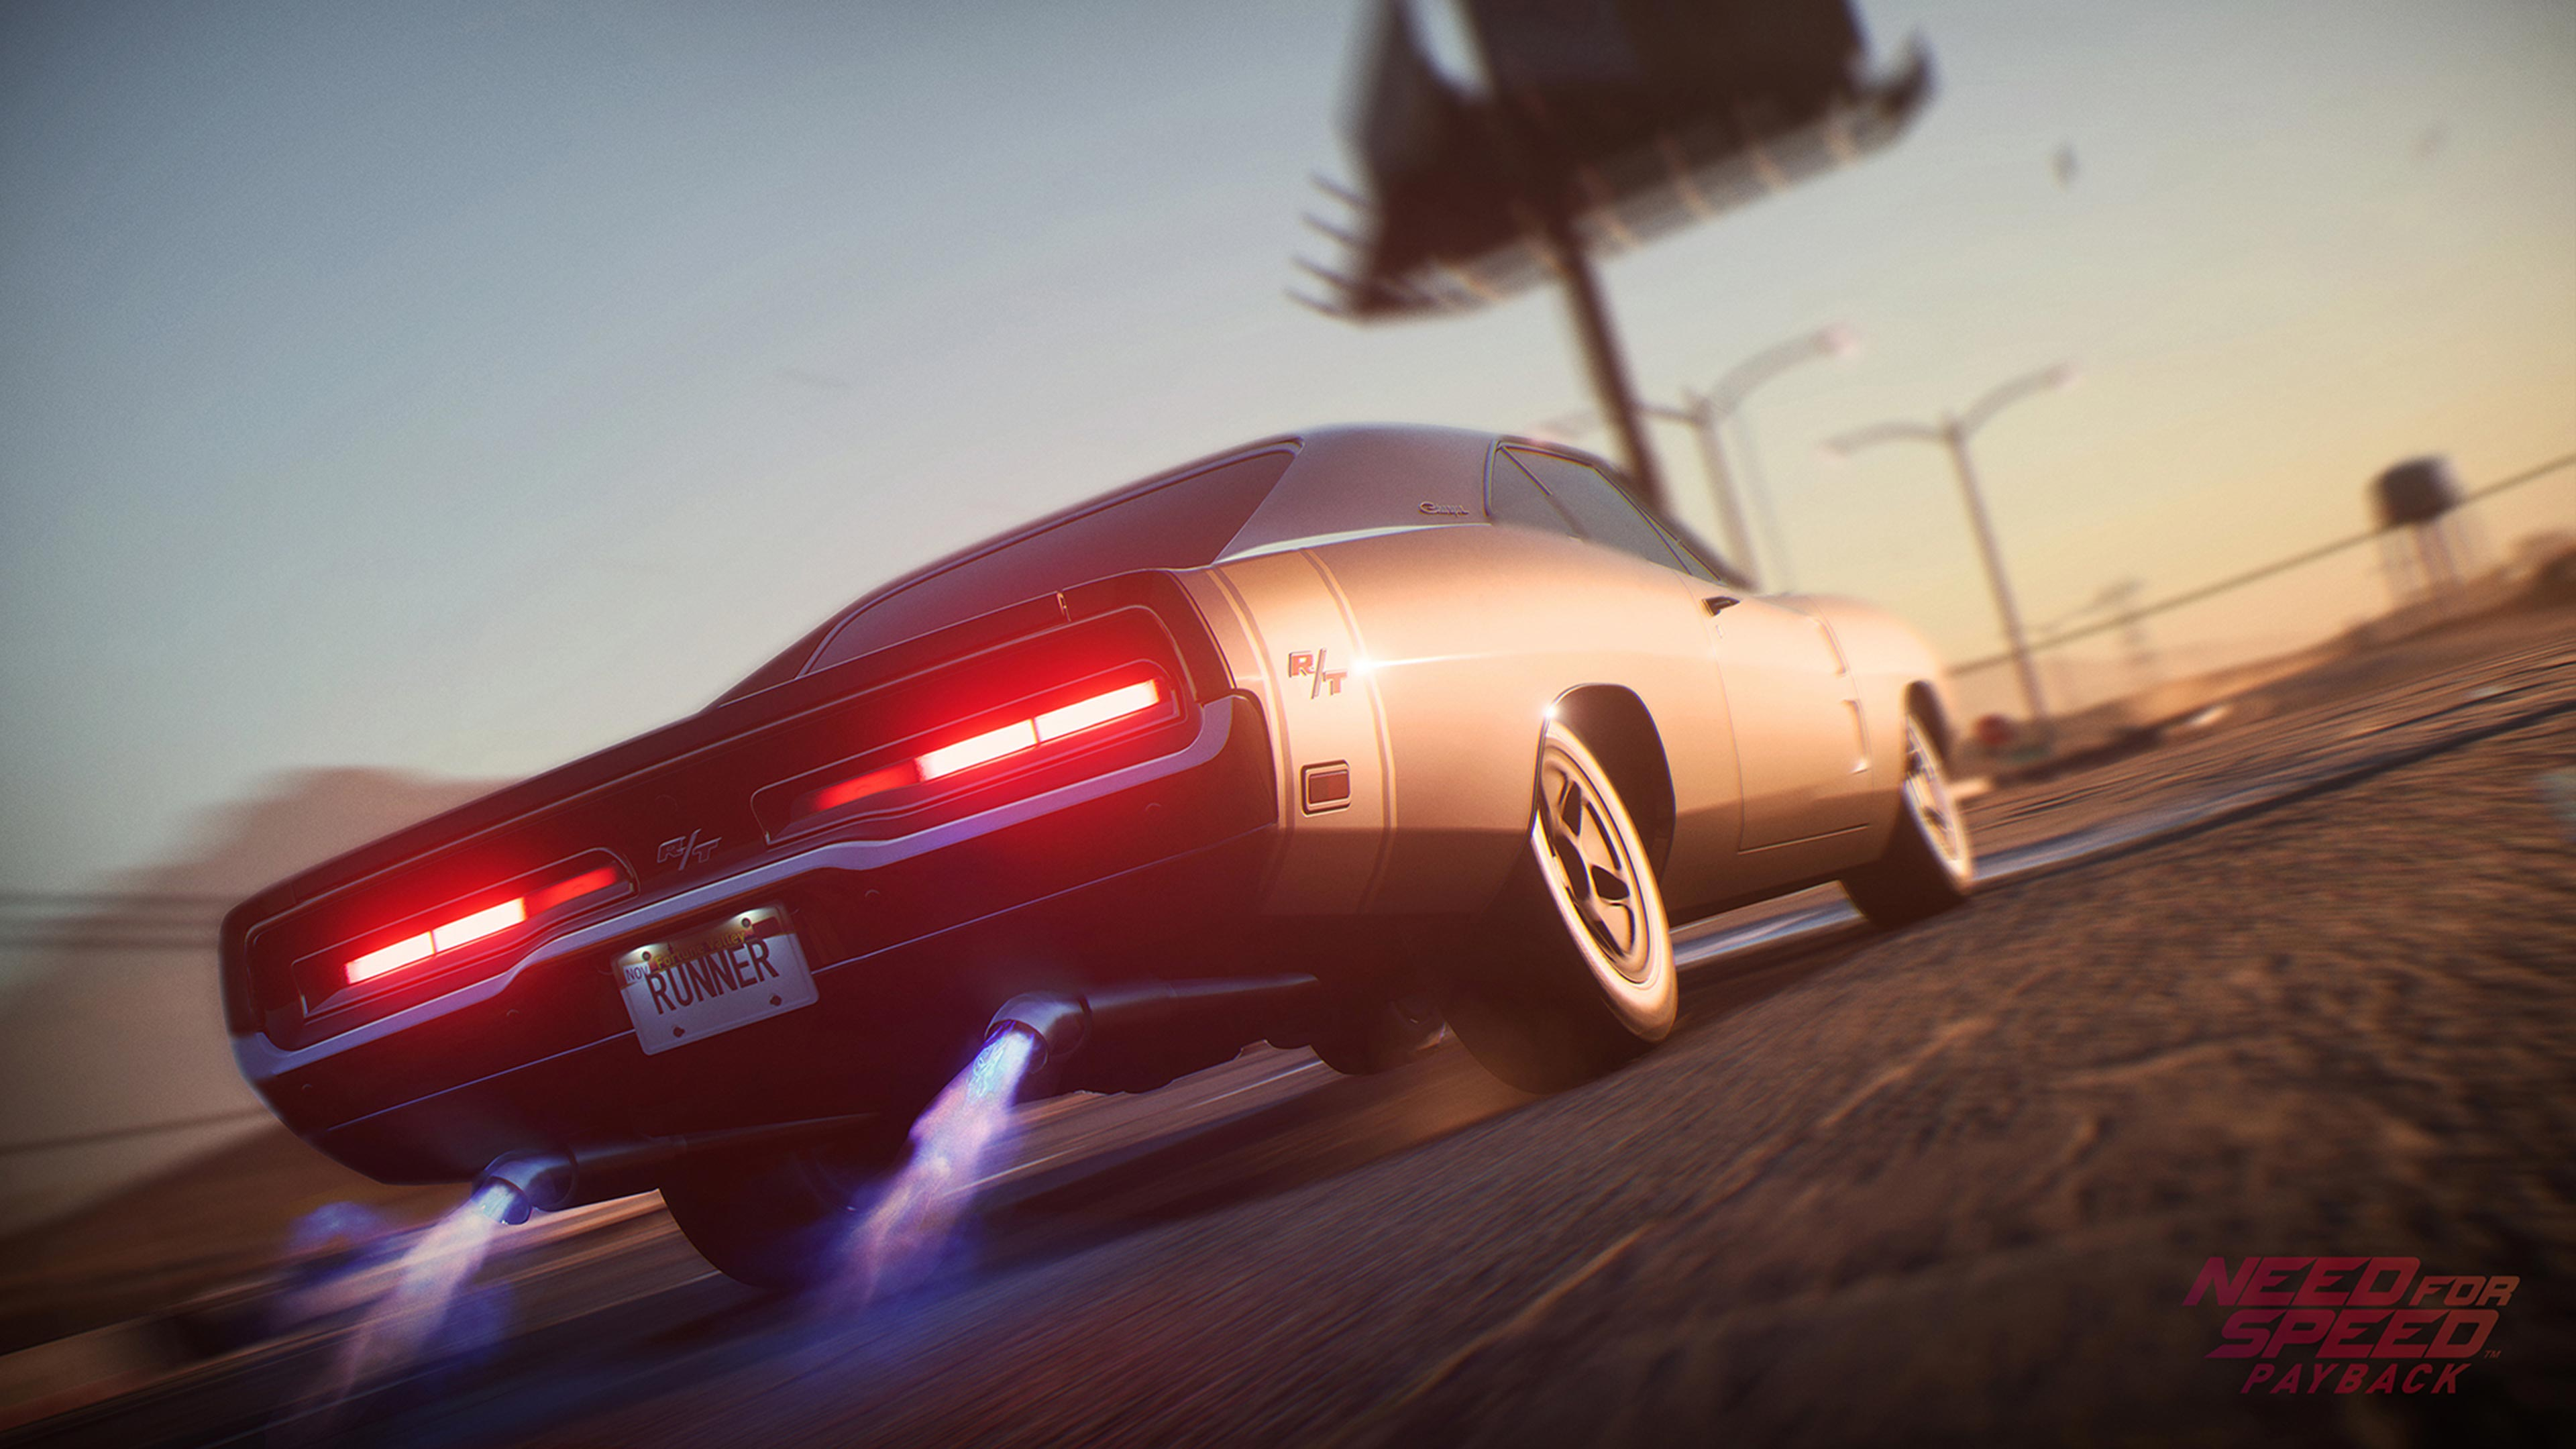 Need For Speed Payback Wallpaper: Dodge Charger Need For Speed Payback, HD Games, 4k